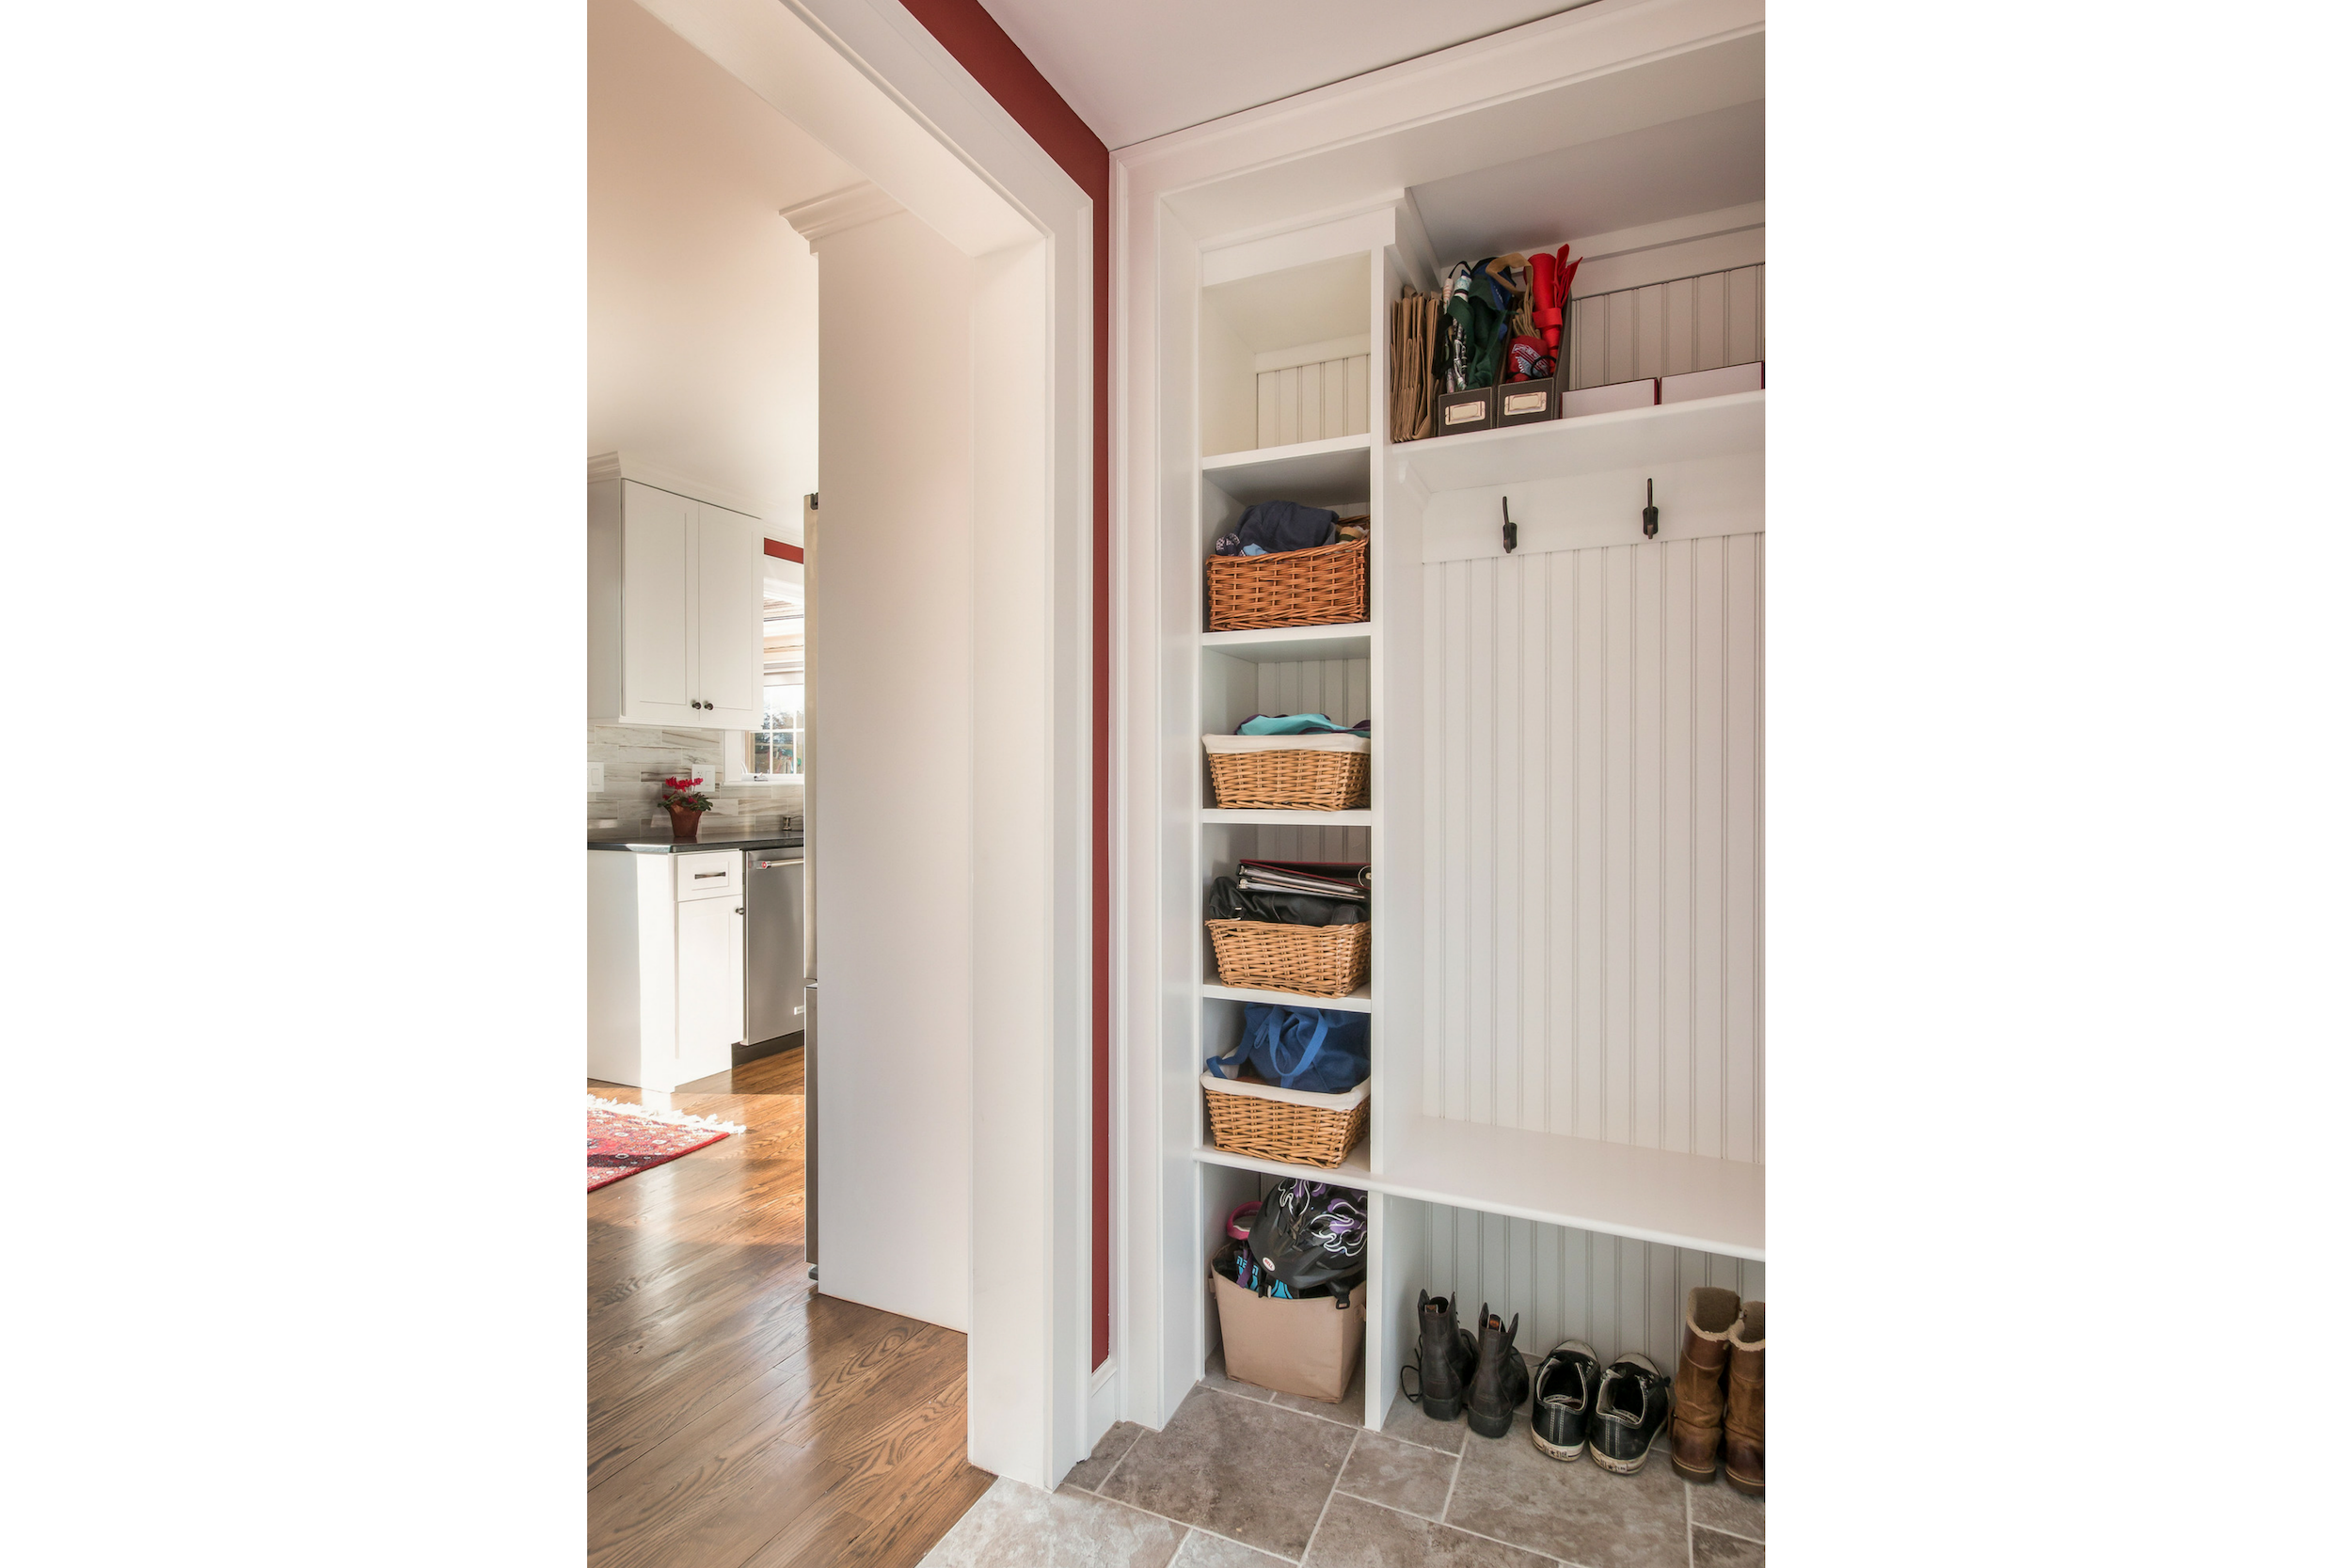 5-KitchenVisions-Mudroom-Remodel-Entry_Needham.png